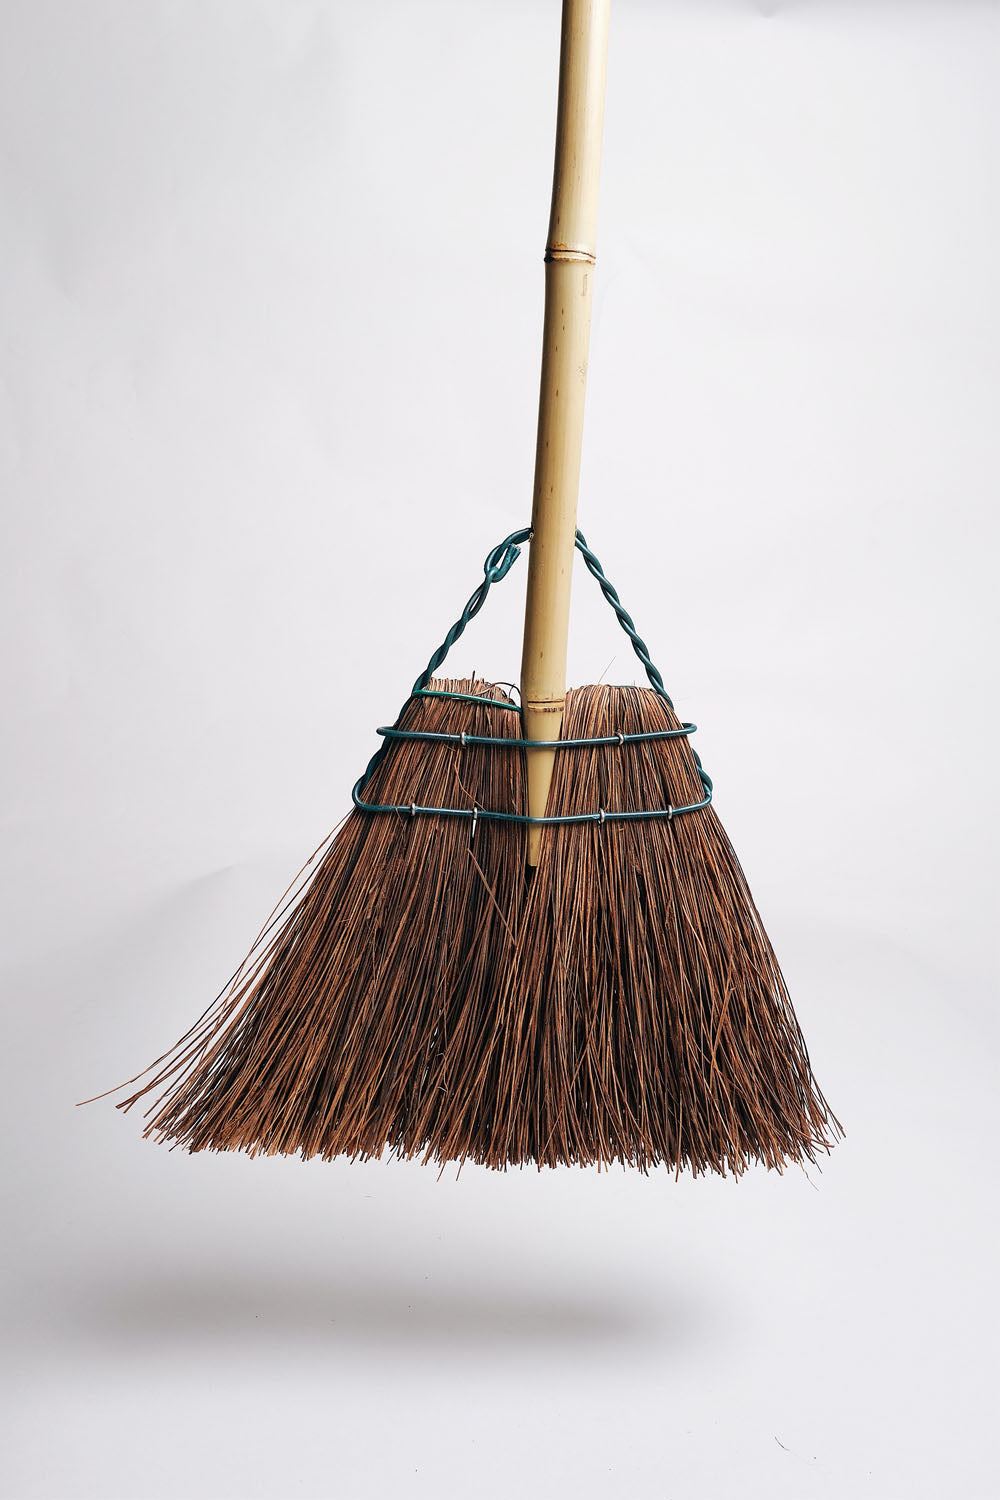 Japanese Long Exterior Broom